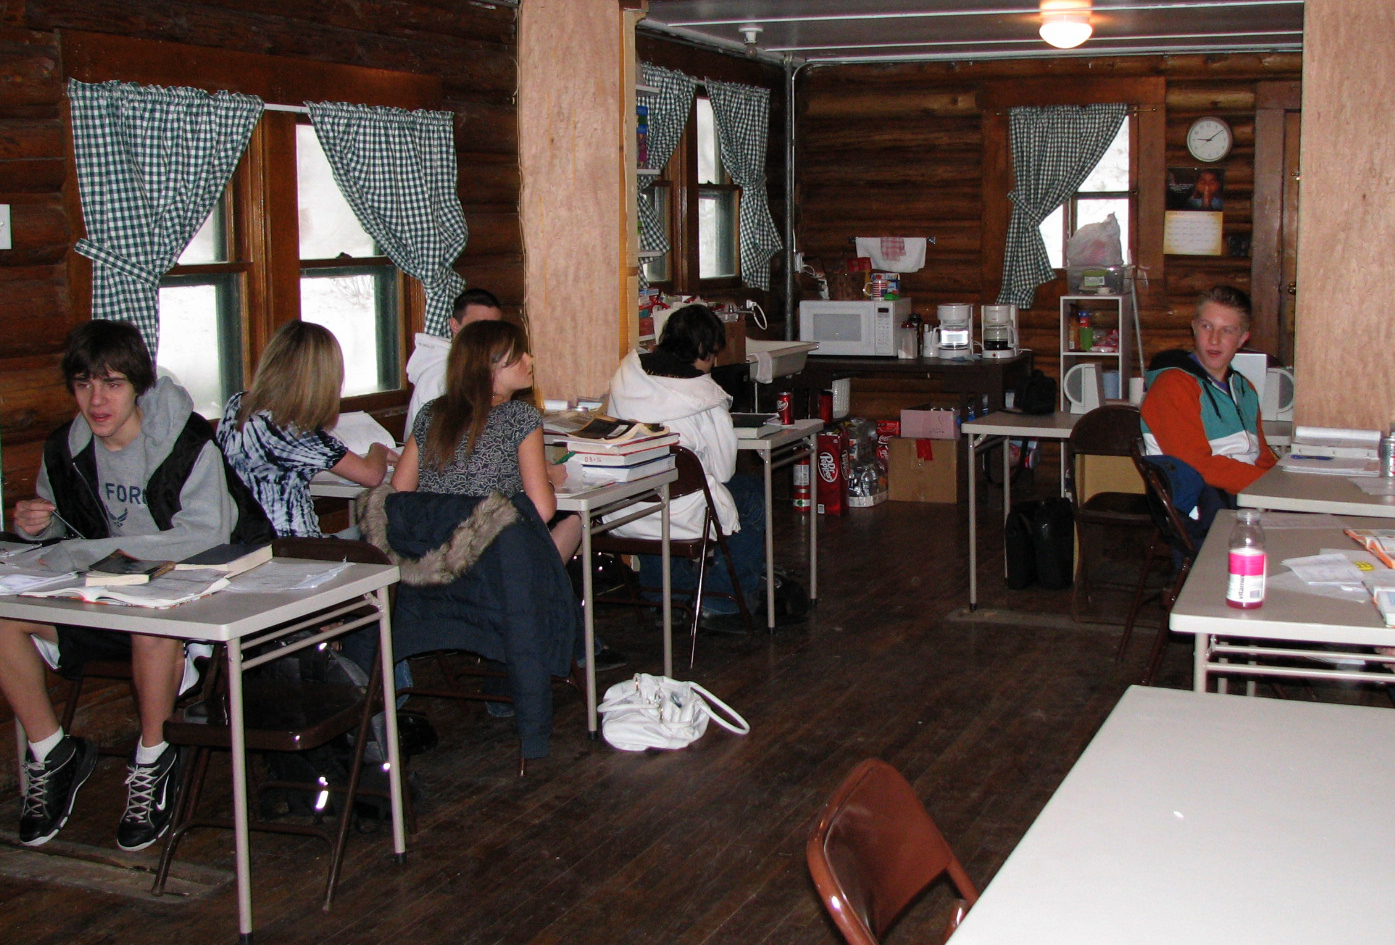 Students working in another area of the cabin